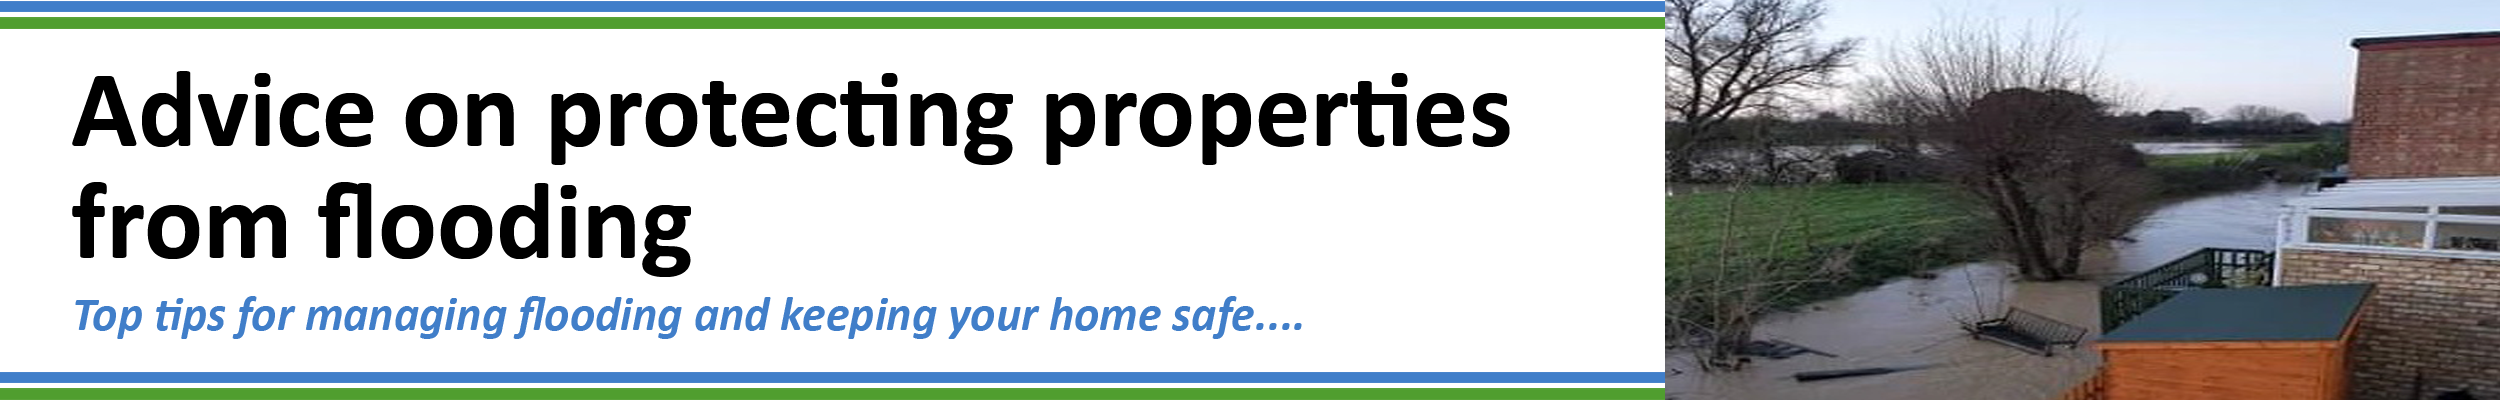 Advice on protecting properties from flooding